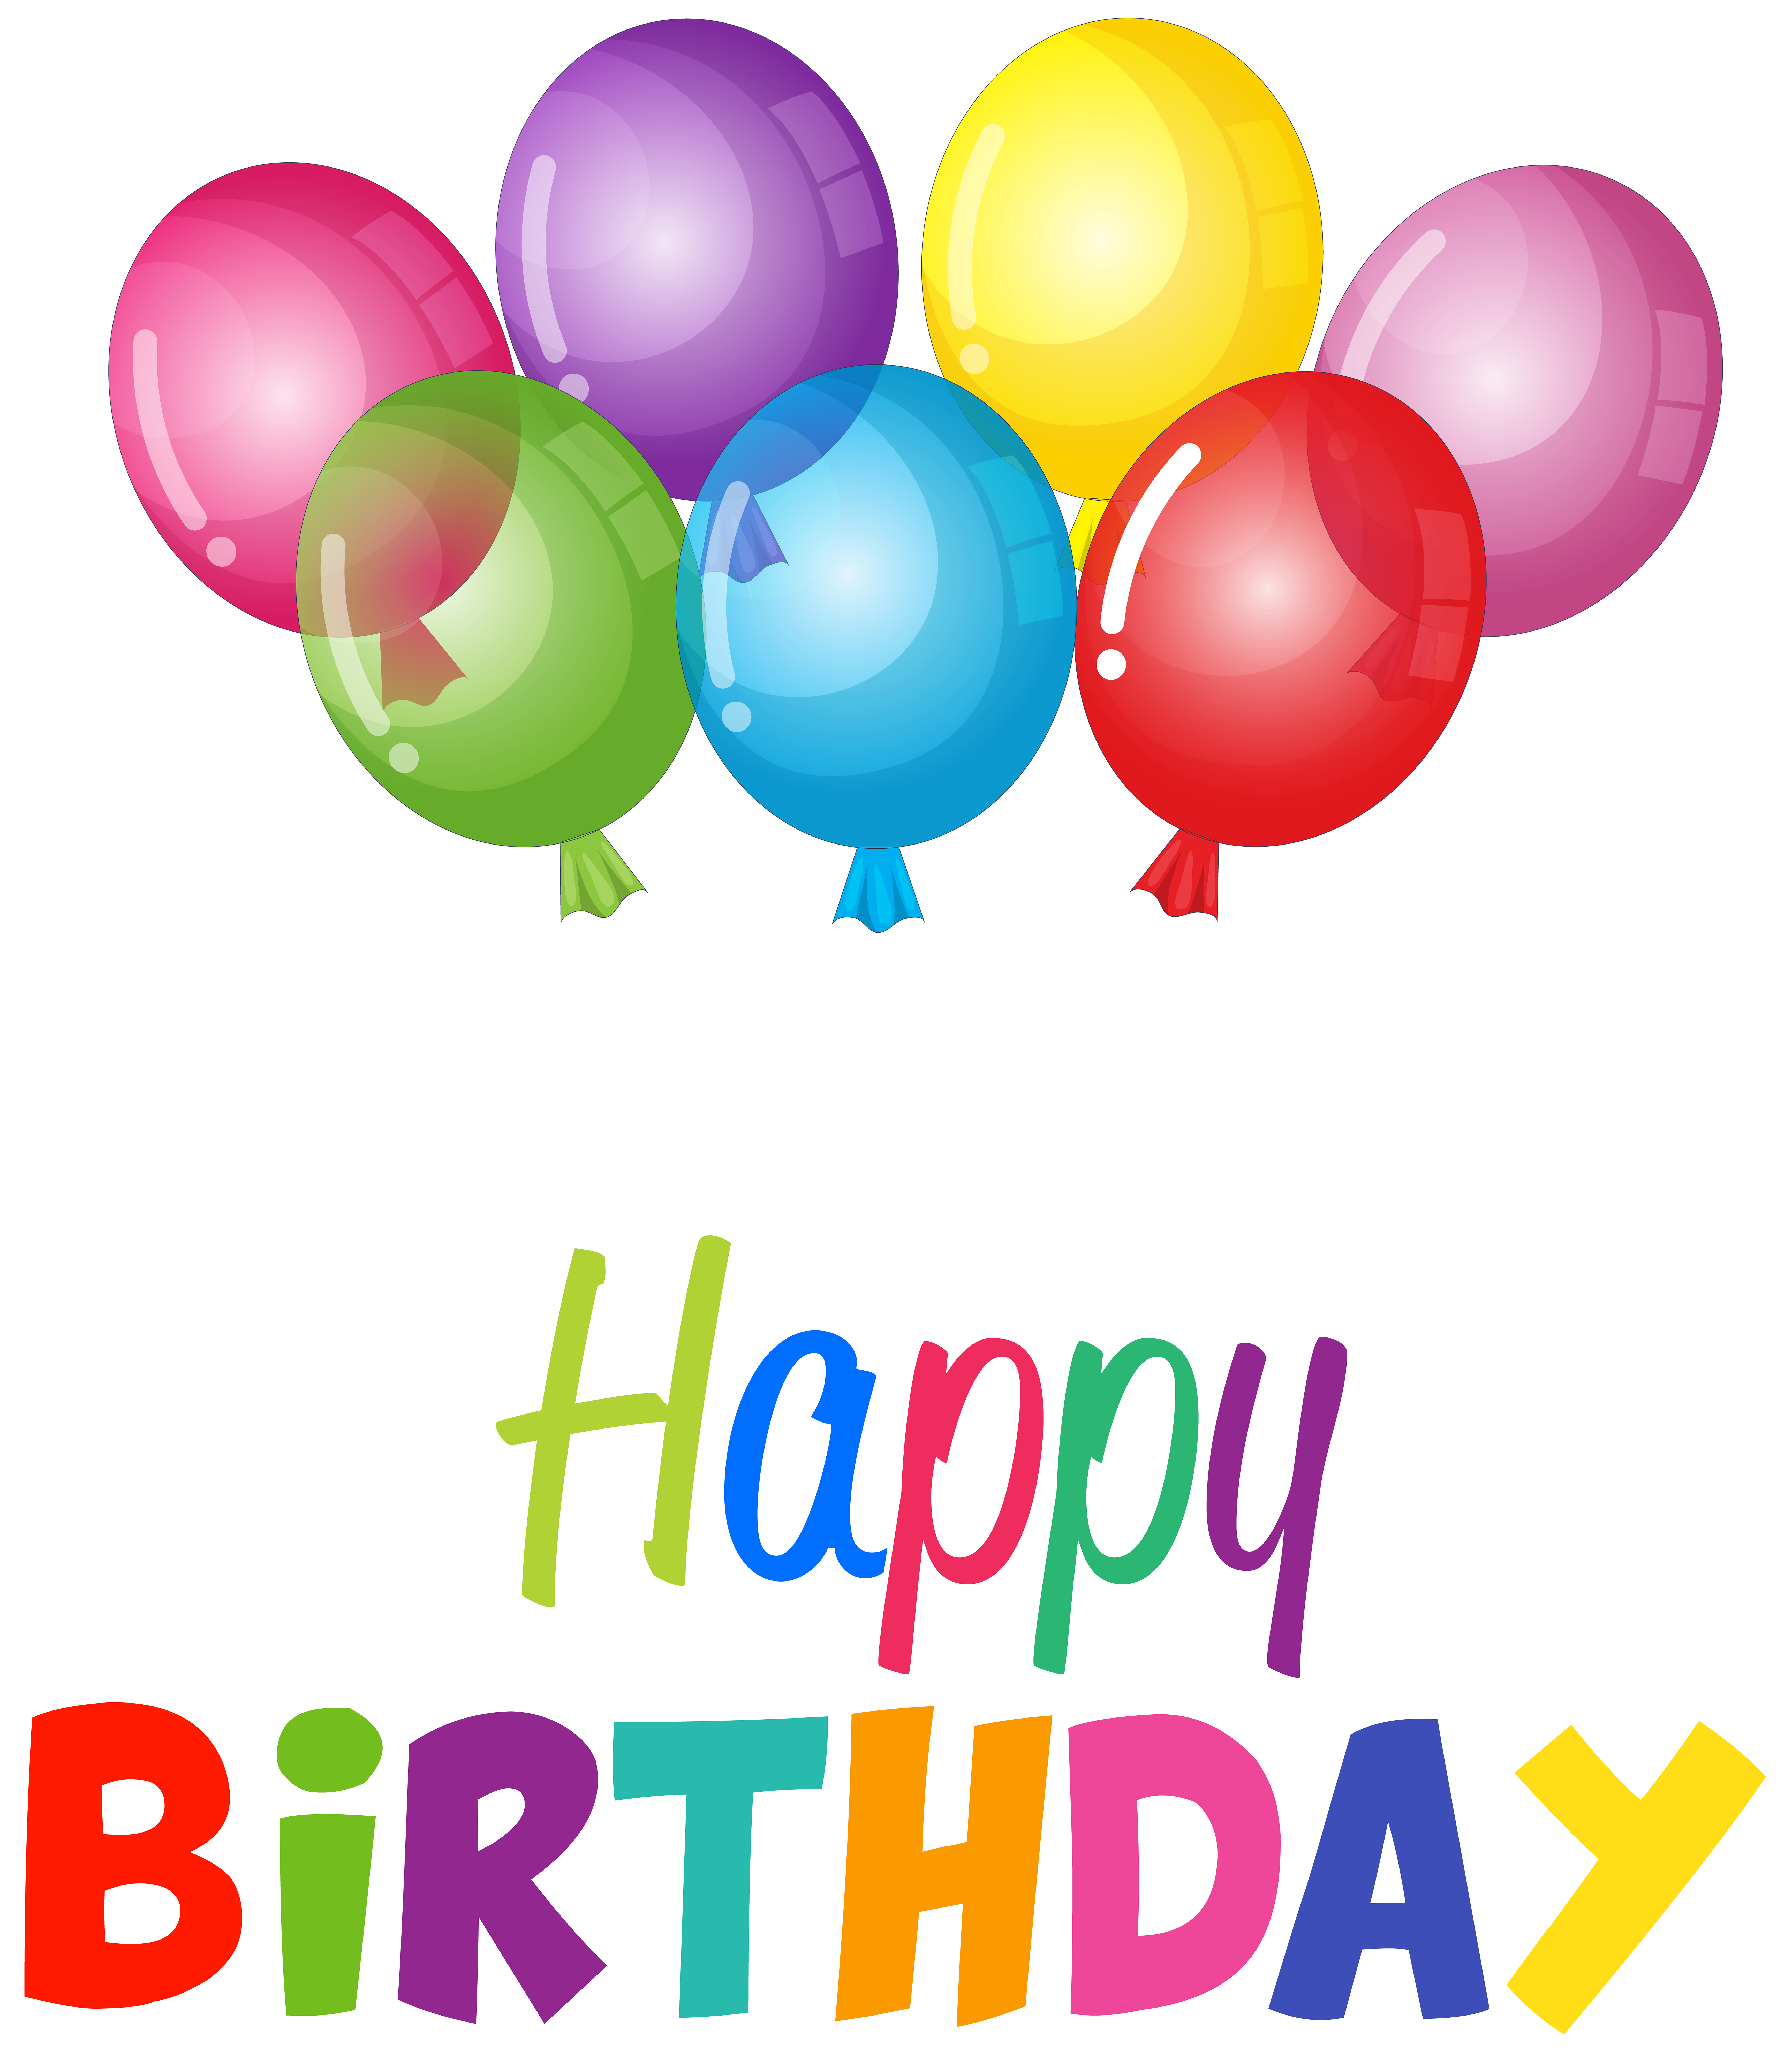 6931 X 8000 3 0 Similar Images By Balloons Clipart Happy Birthday